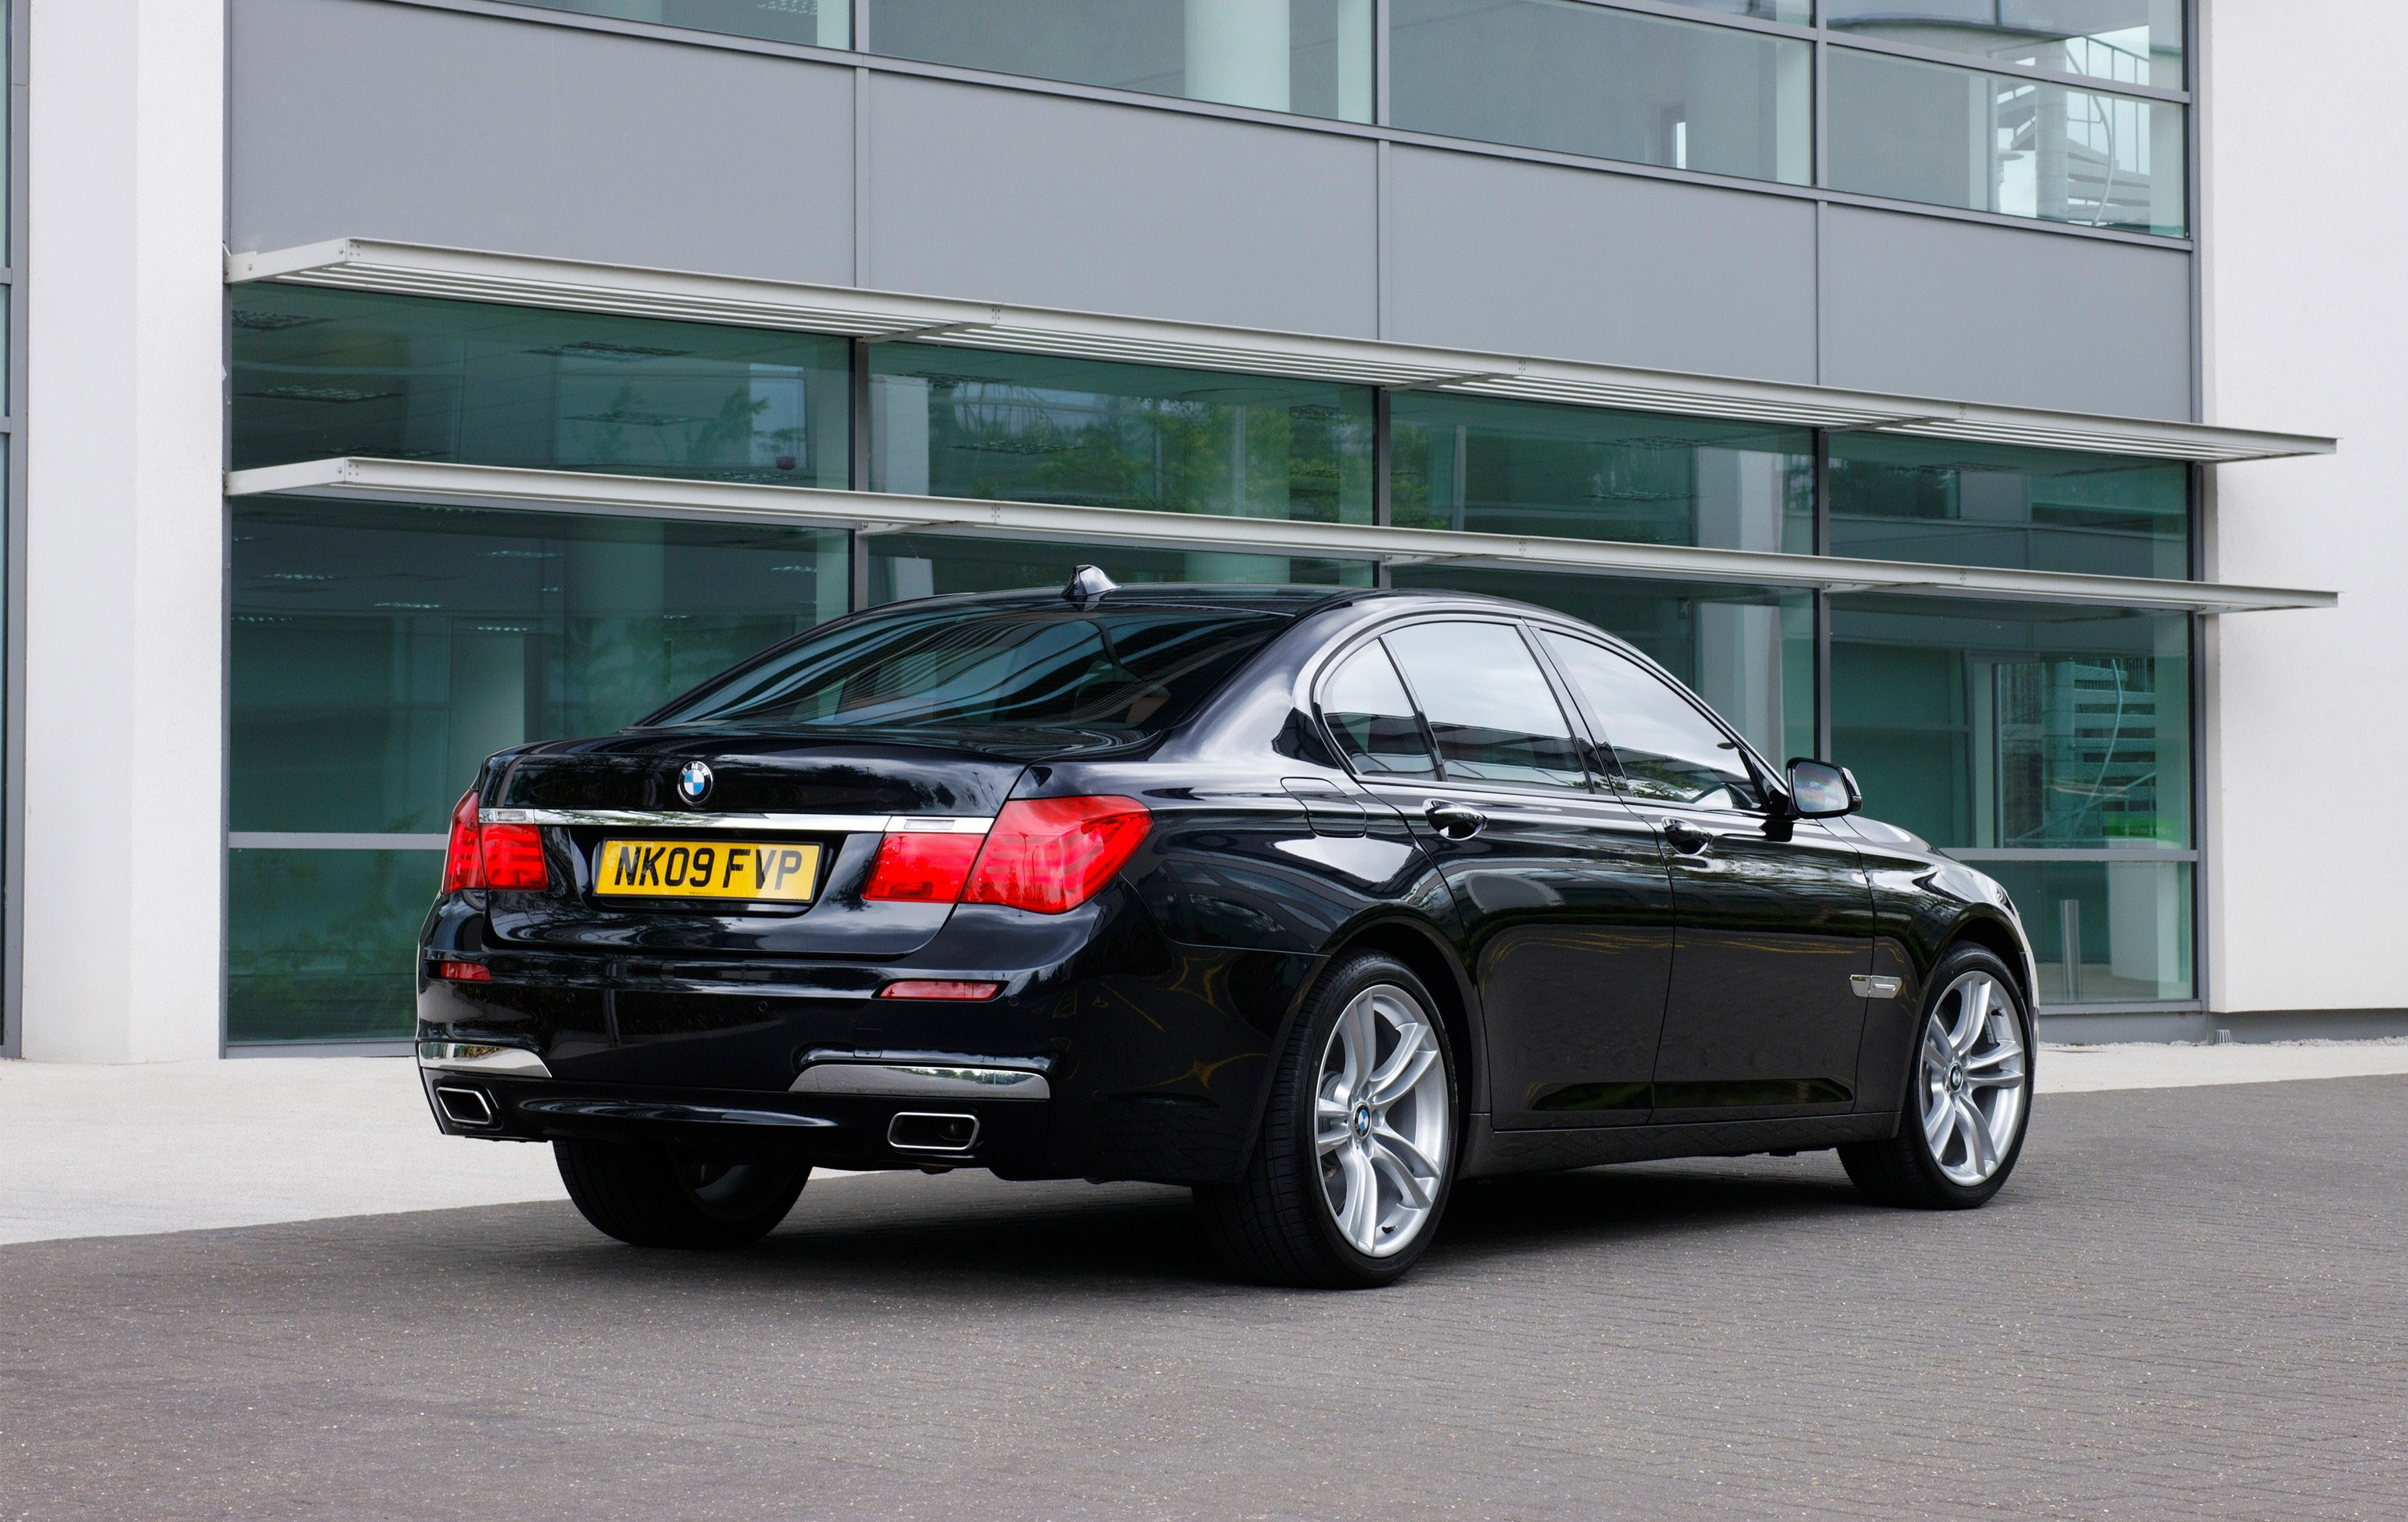 2011 Bmw 740i And 740li Sedans Pricing Announced Modified 7 Series 740d M Sports Package